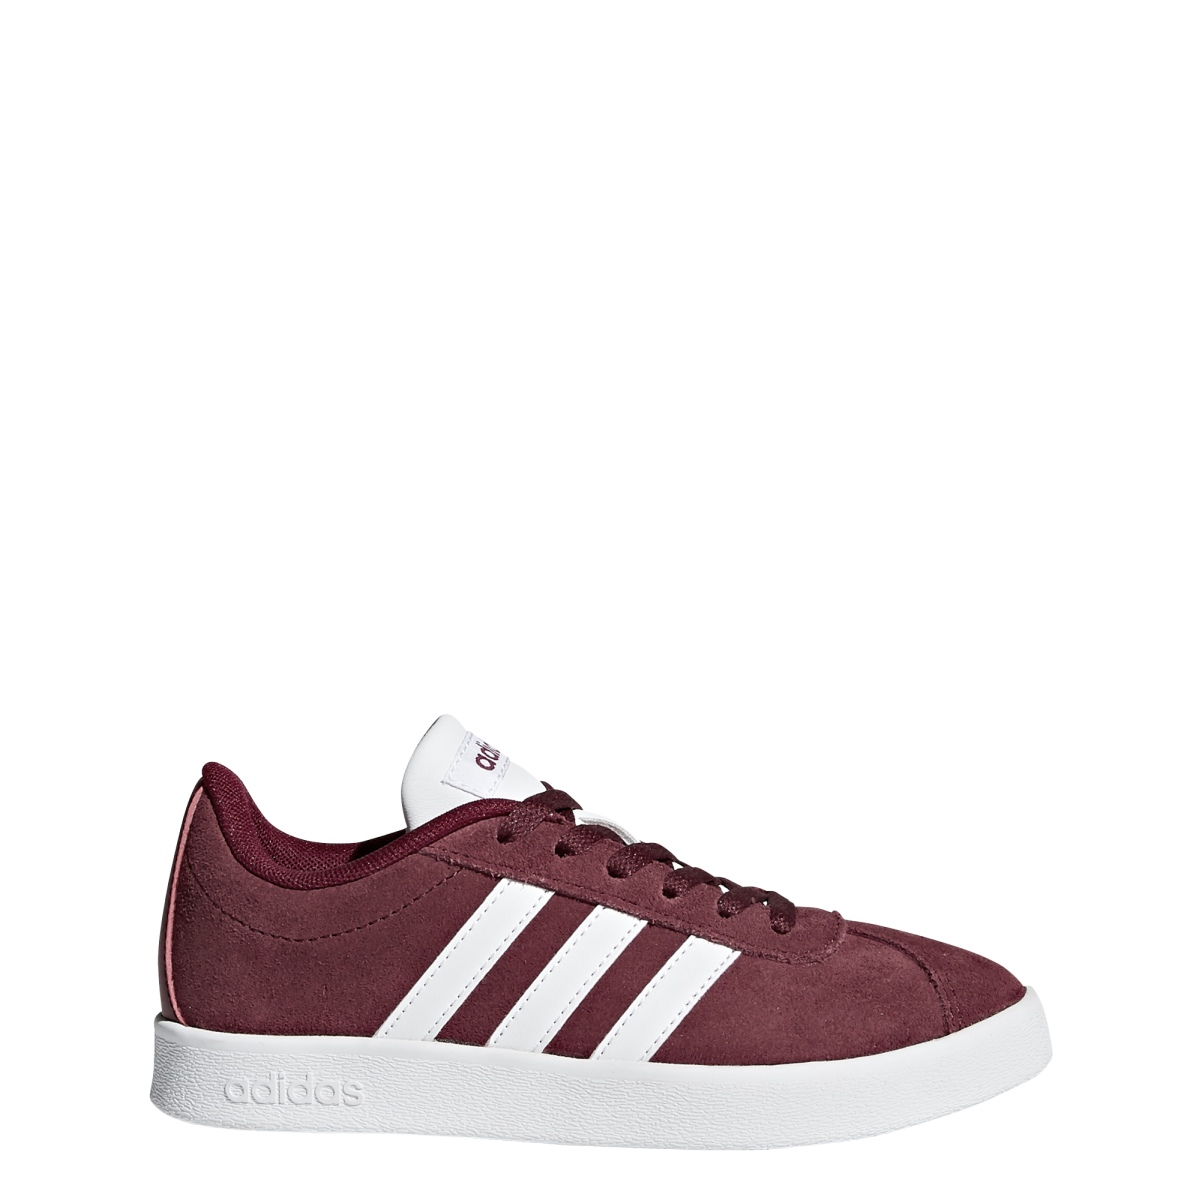 brand new fc67c a0c7d Adidas Vl Court 2.0 Junior. DB1829. Product afbeelding